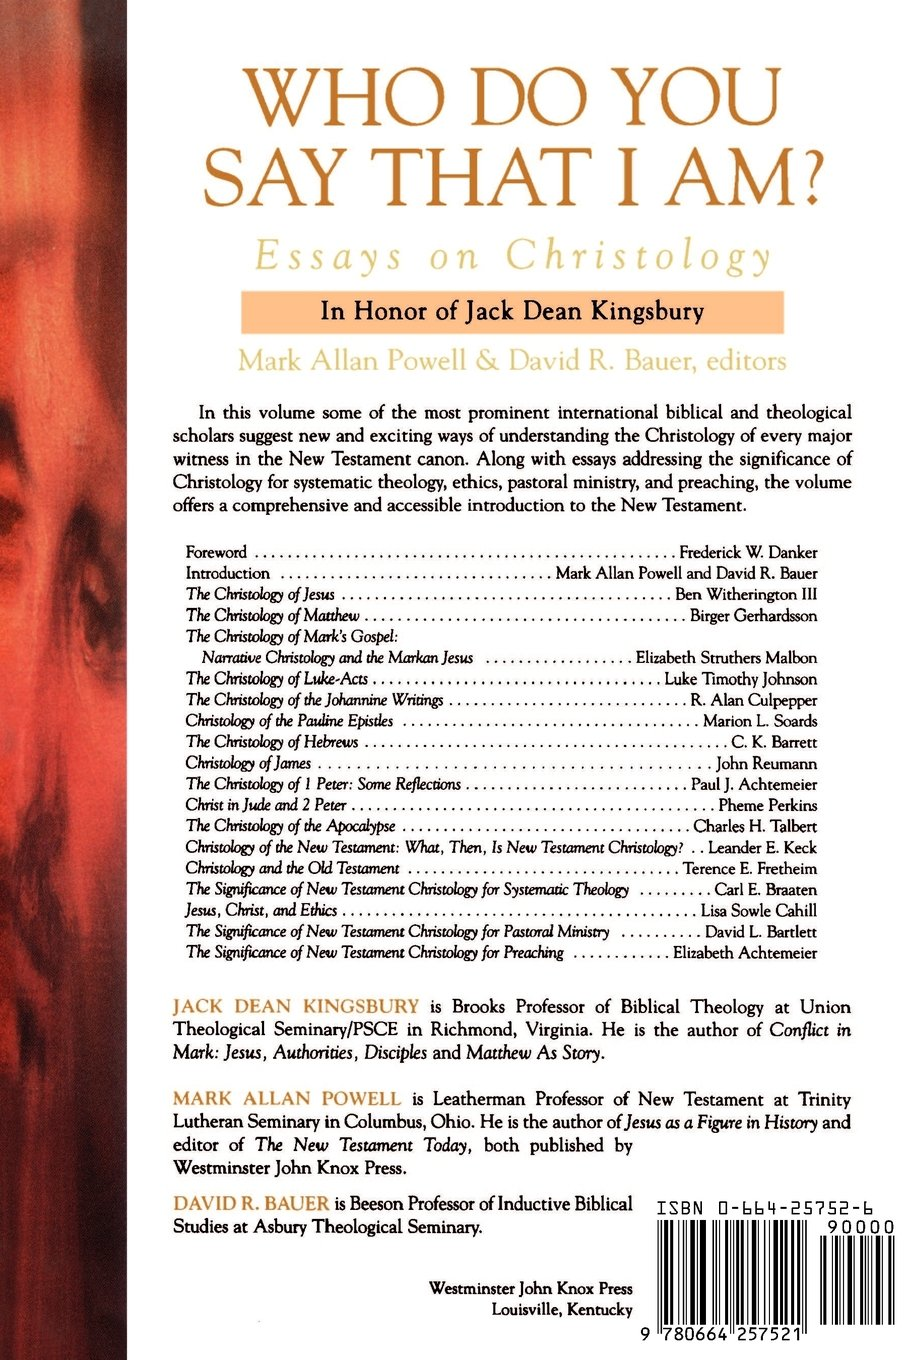 who do you say that i am essays on christology mark allan who do you say that i am essays on christology mark allan powell david r bauer 9780664257521 com books